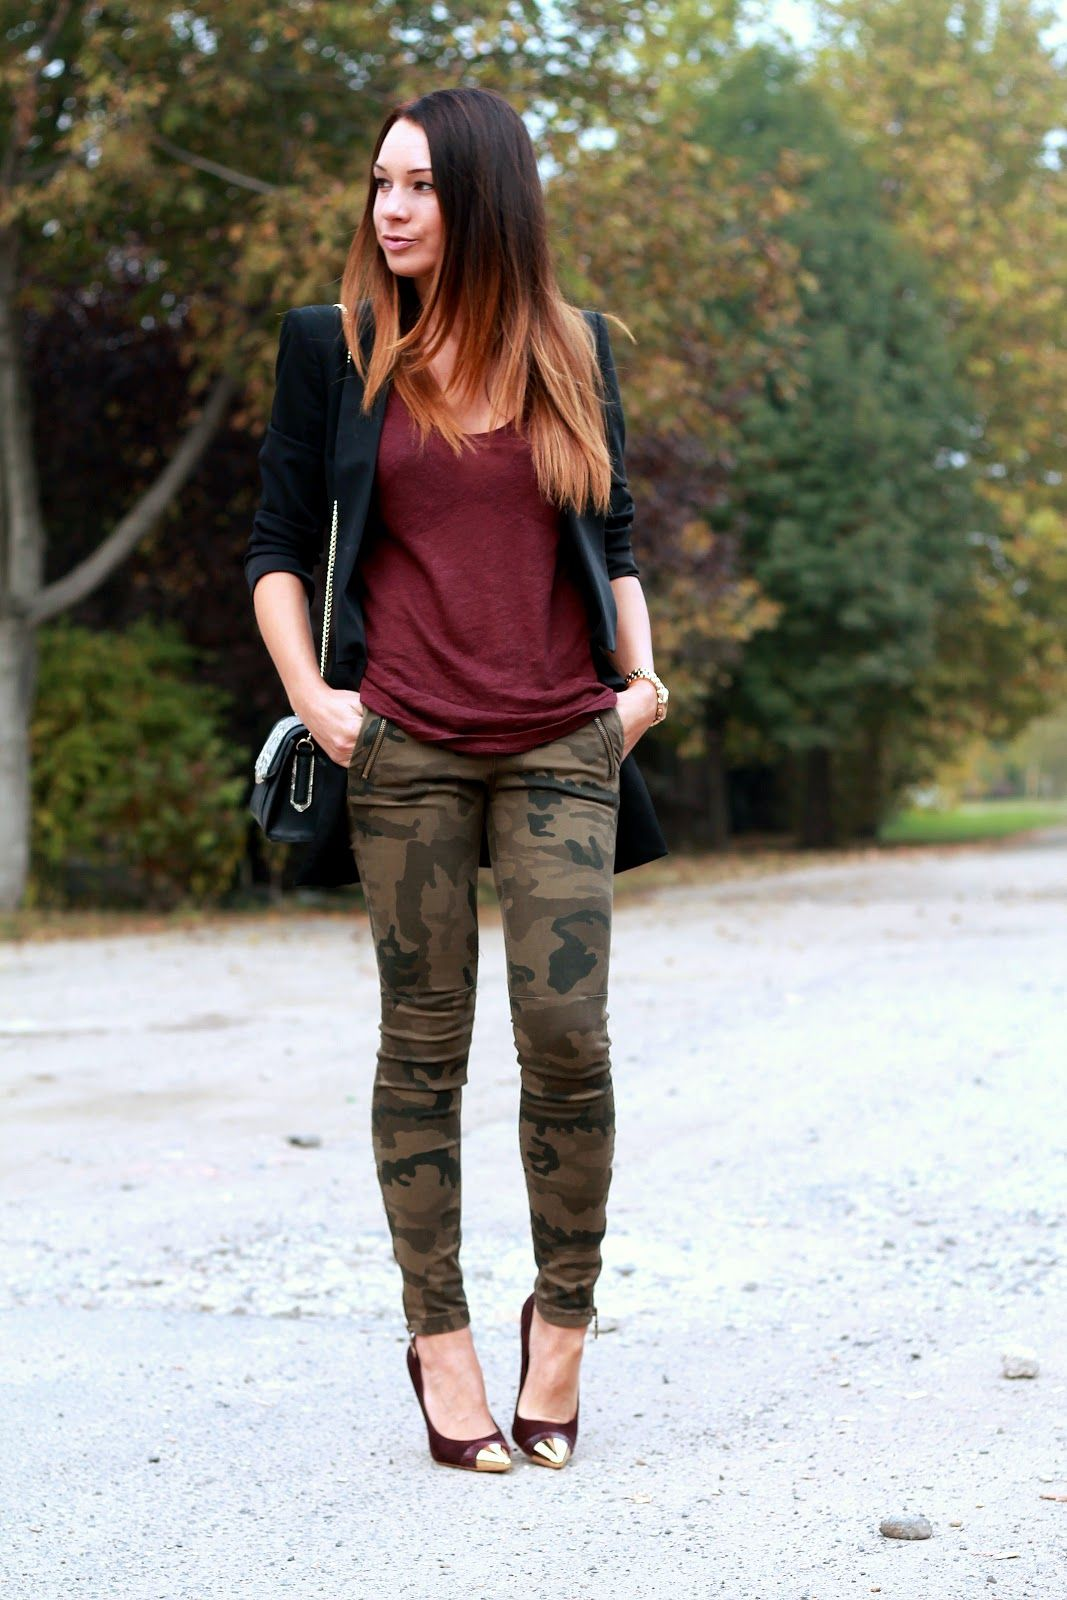 f3f979cdf4851 Cashmere in Style: Oxblood & Camo love the pairing of the camo with the  deep oxblood....possible tights with combat boots? hmmmm